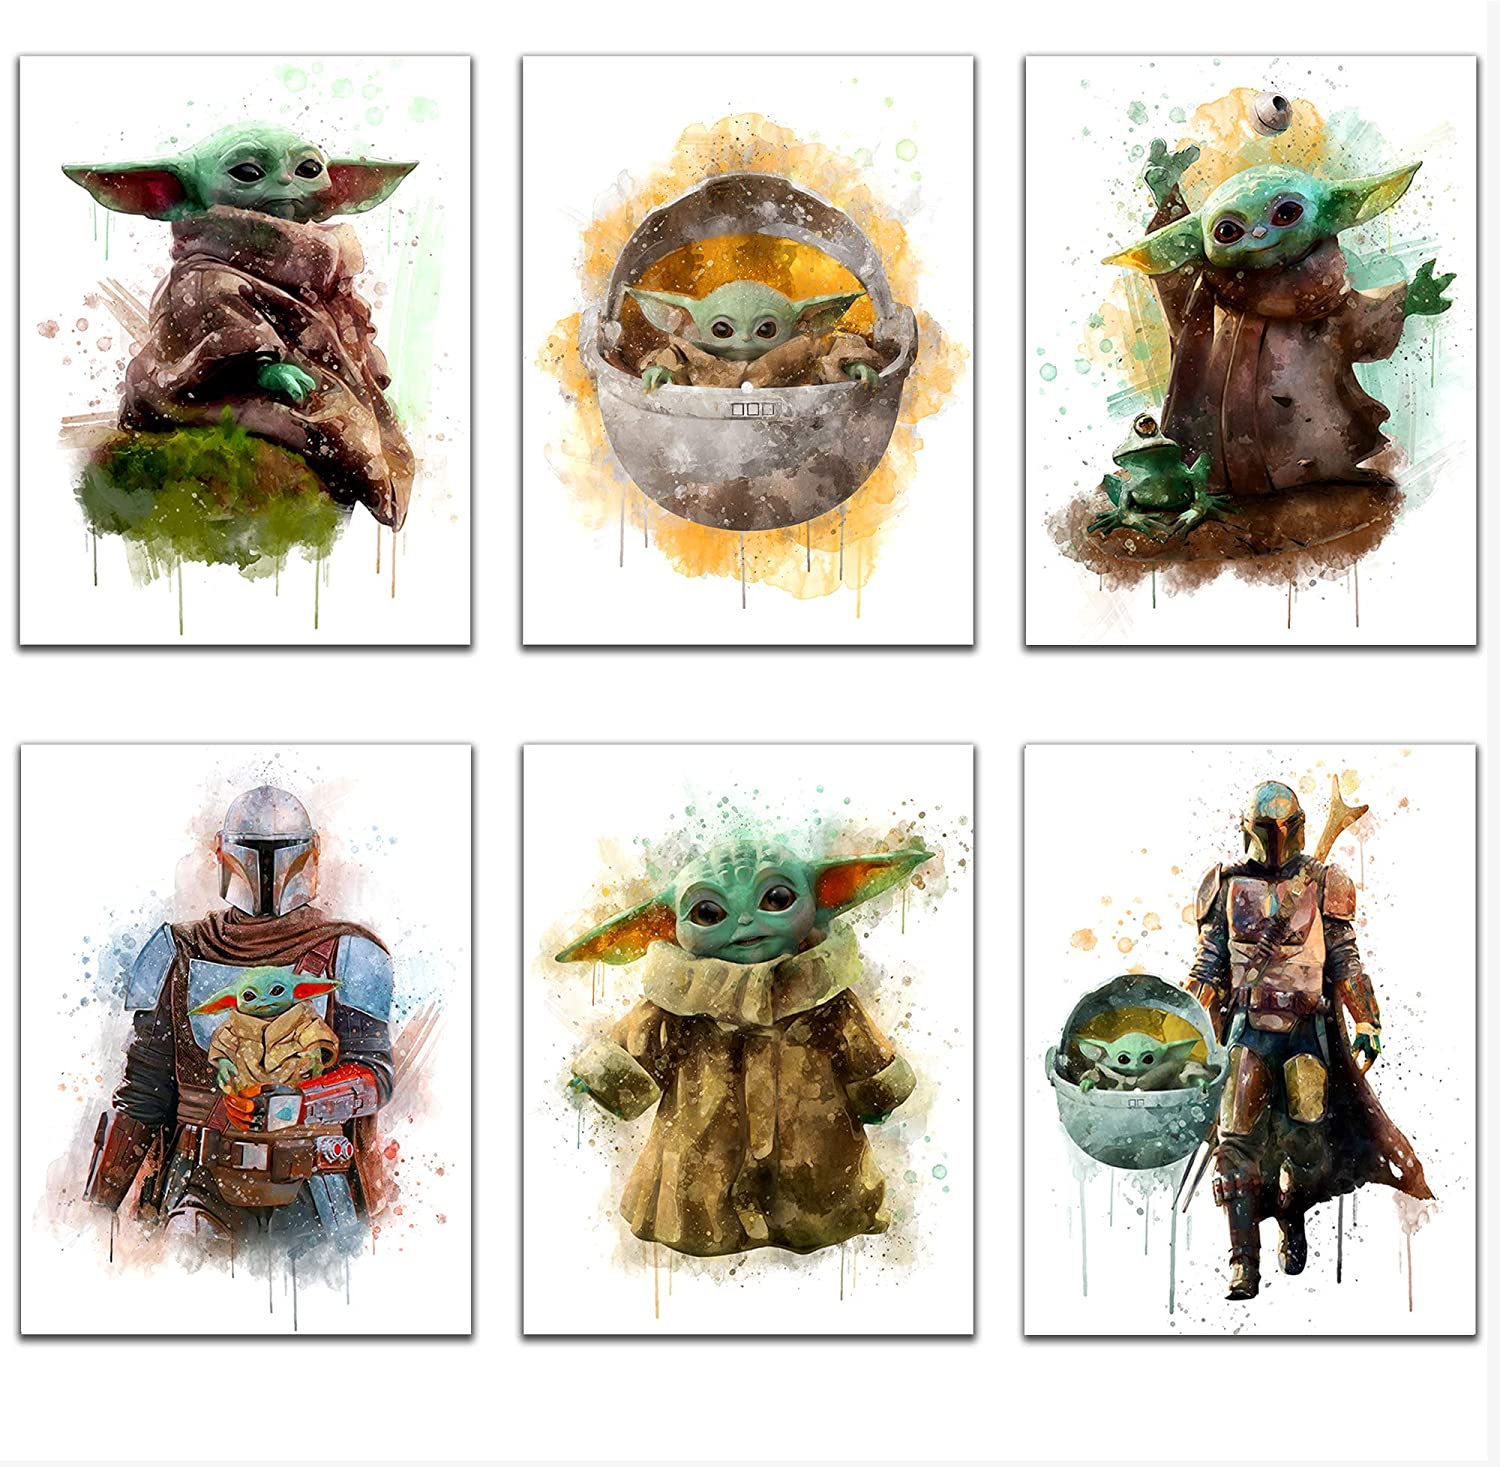 Star Wars The Child Baby Yoda Art Prints, Set of 6 (8 inches x 10 inches), Nursery Wall Art Stuff Decor, The Mandalorian Baby Grogu Photos, Kids Playroom, Wall Poster for Office (UNFRAMED)